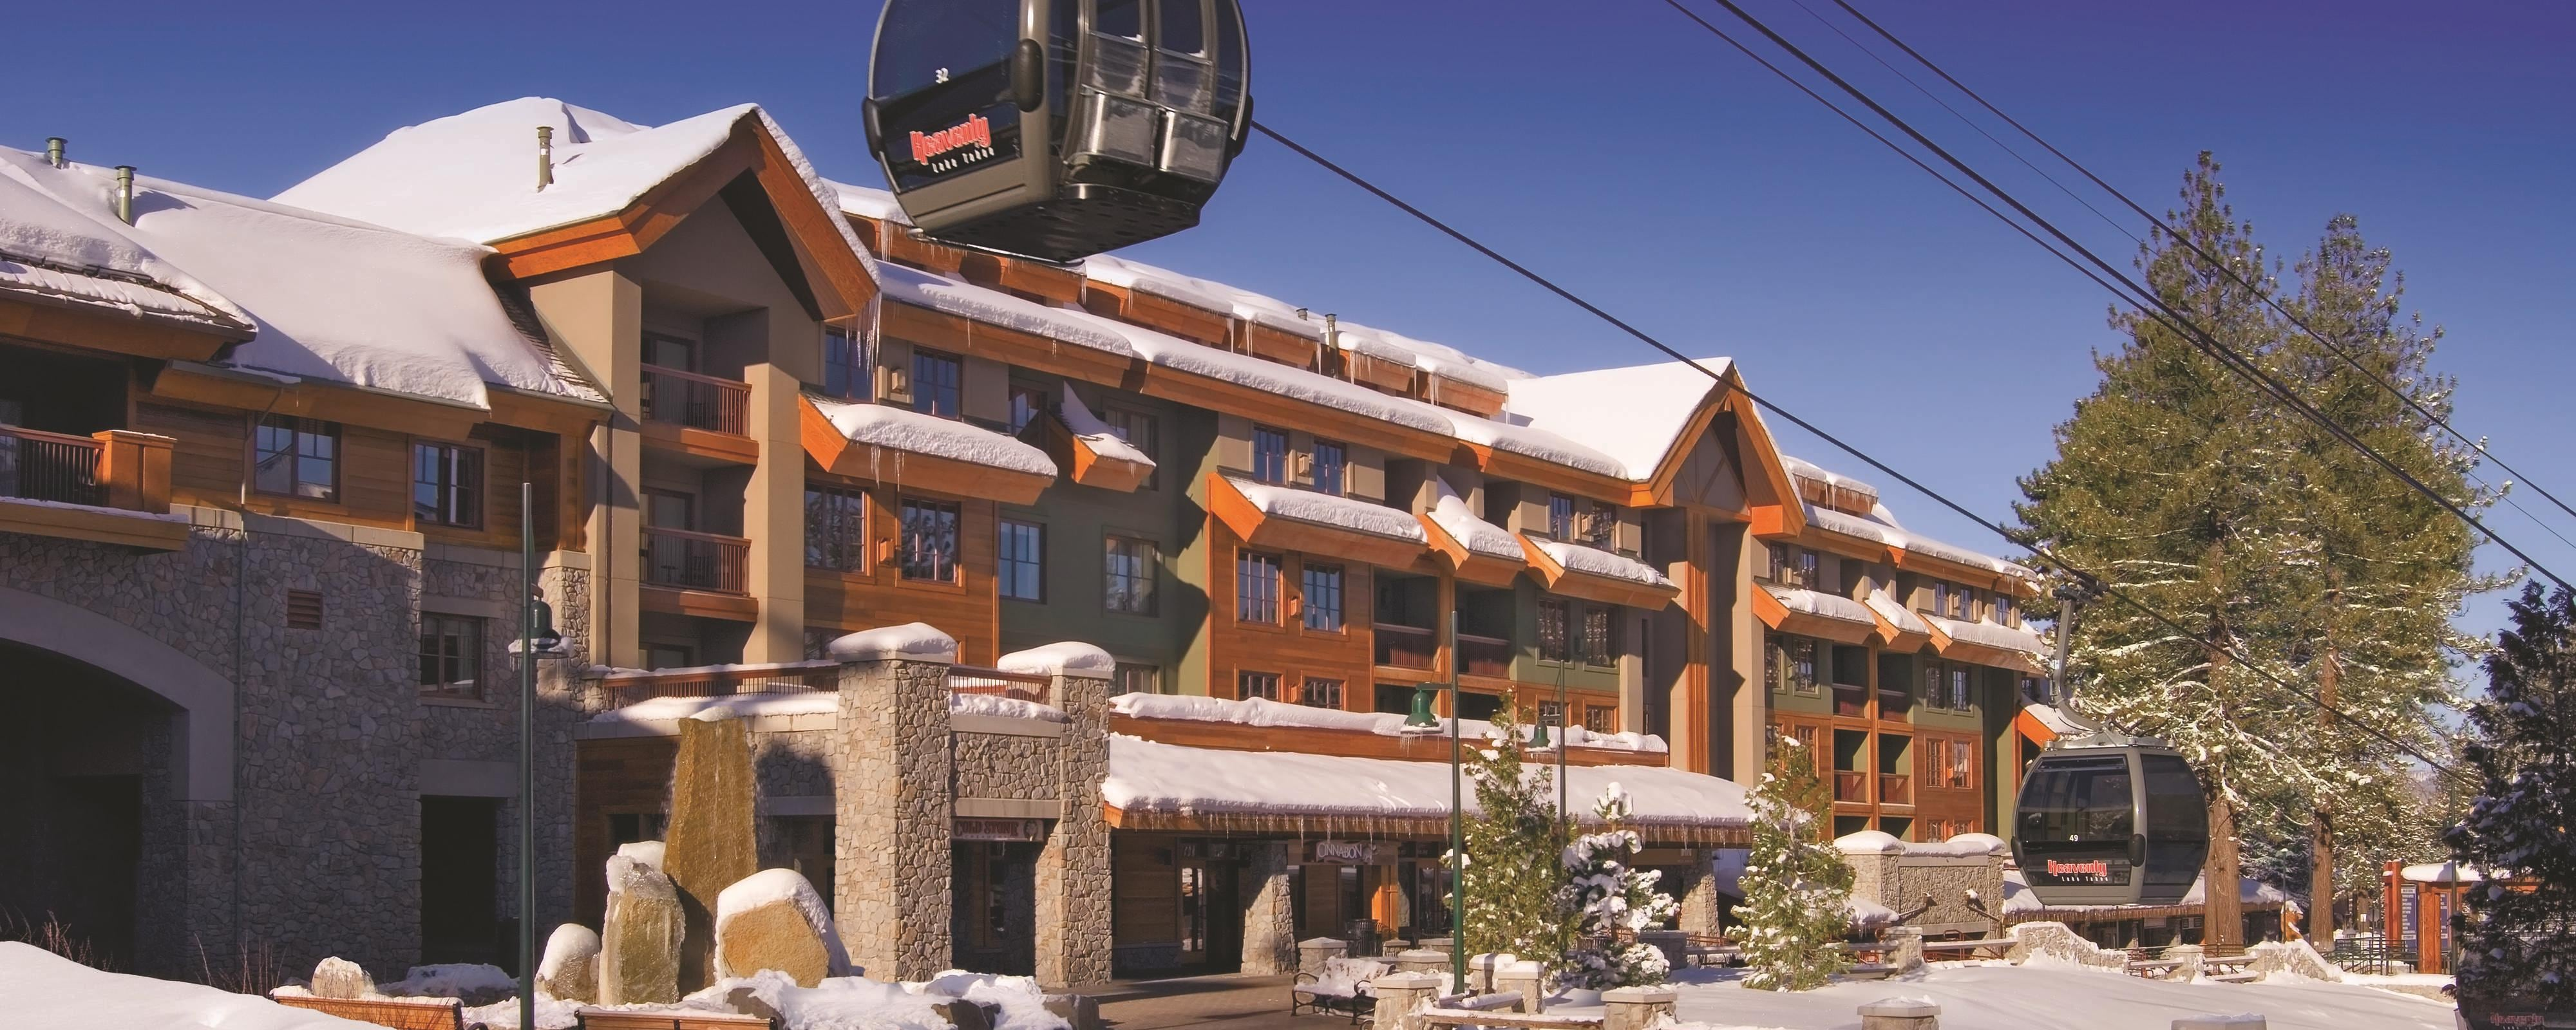 Lake Tahoe Resort Exterior